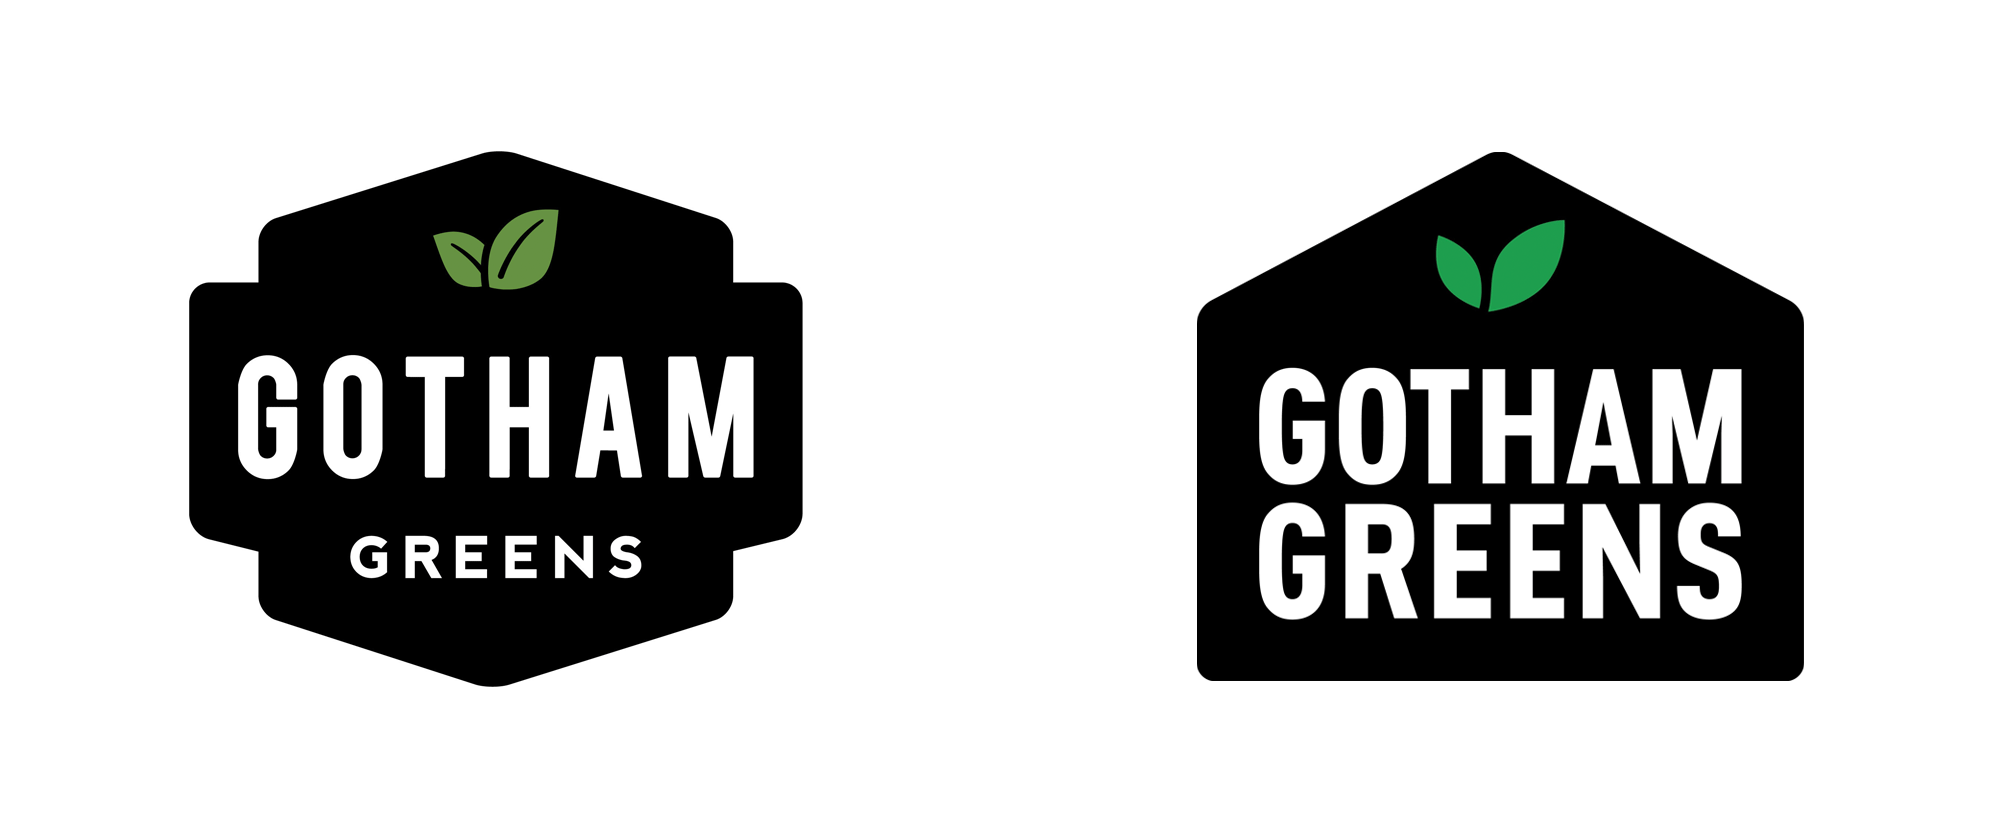 New Logo and Packaging for Gotham Greens